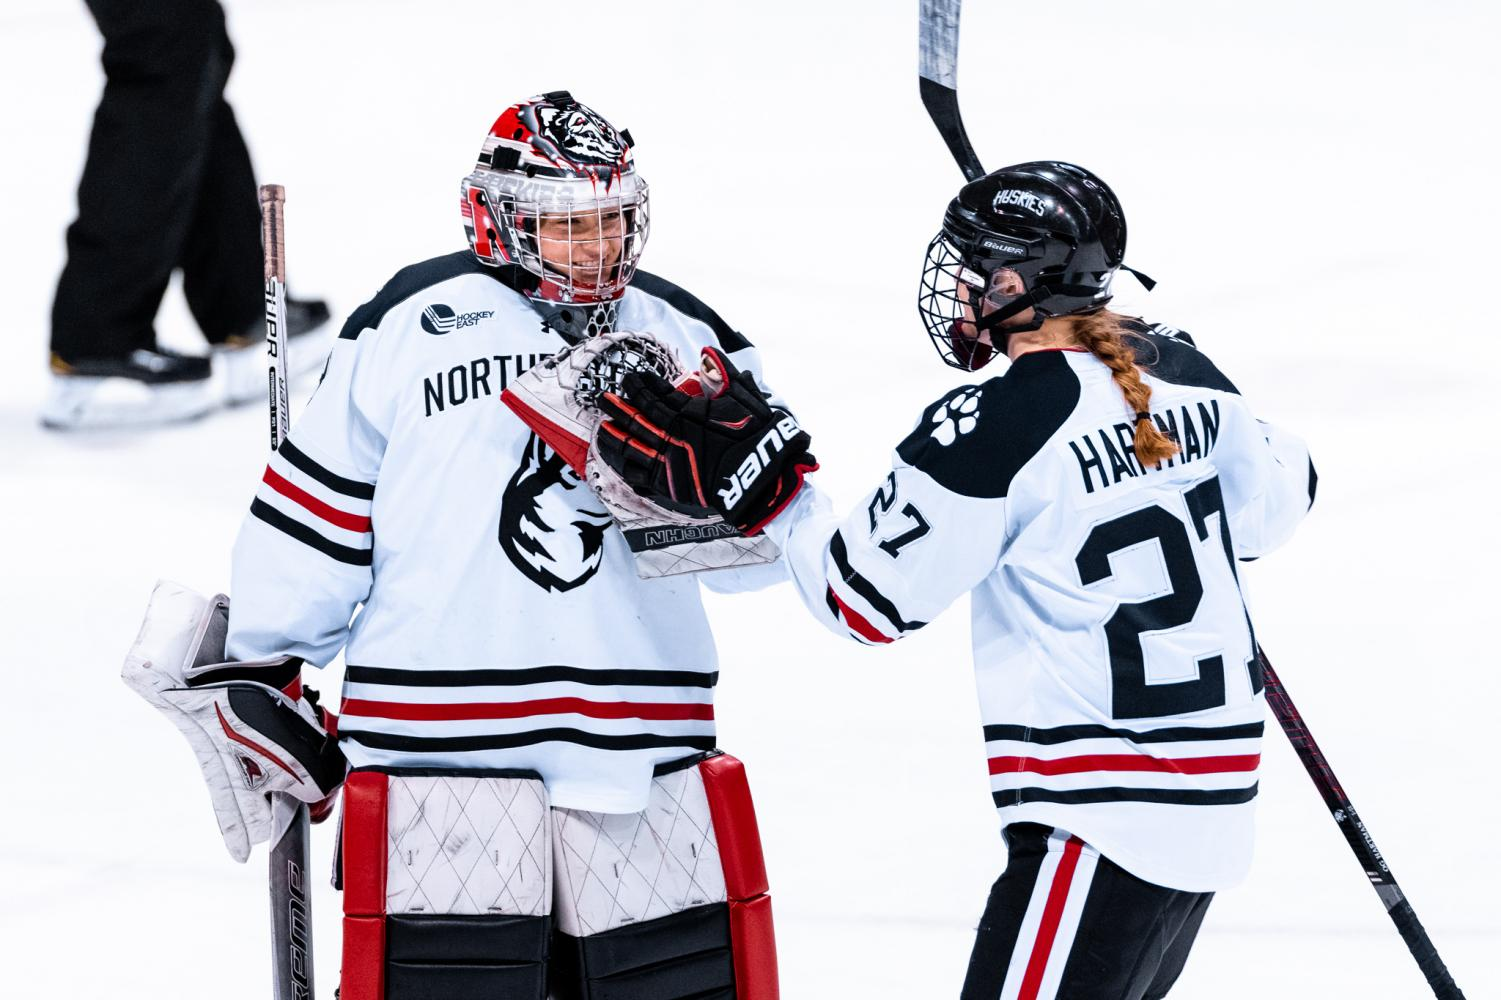 Junior goaltender Aerin Frankel and graduated defender Maddie Hartman greet each other on the ice in a match against Holy Cross last season.